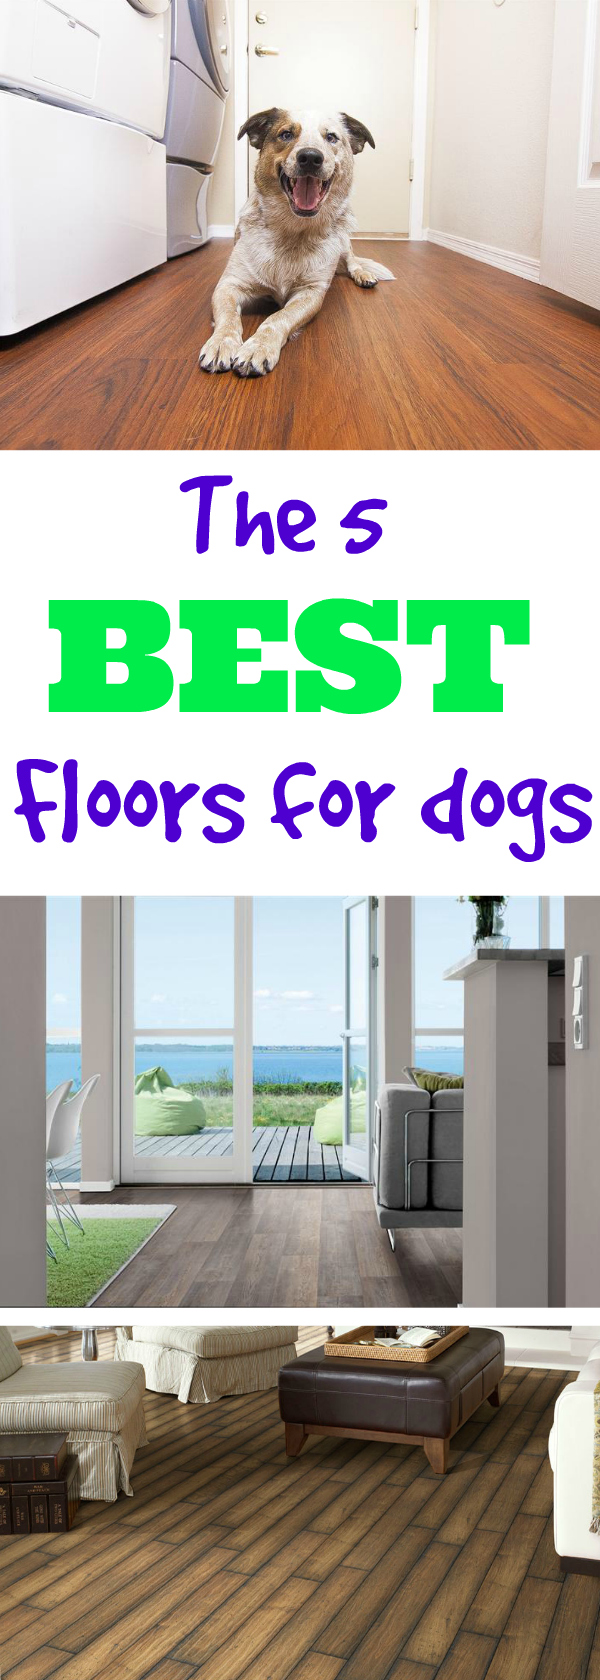 Amazing Whatu0027s The Best Flooring For Dogs? Weu0027ve Gathered The Top 5 Dog Friendly